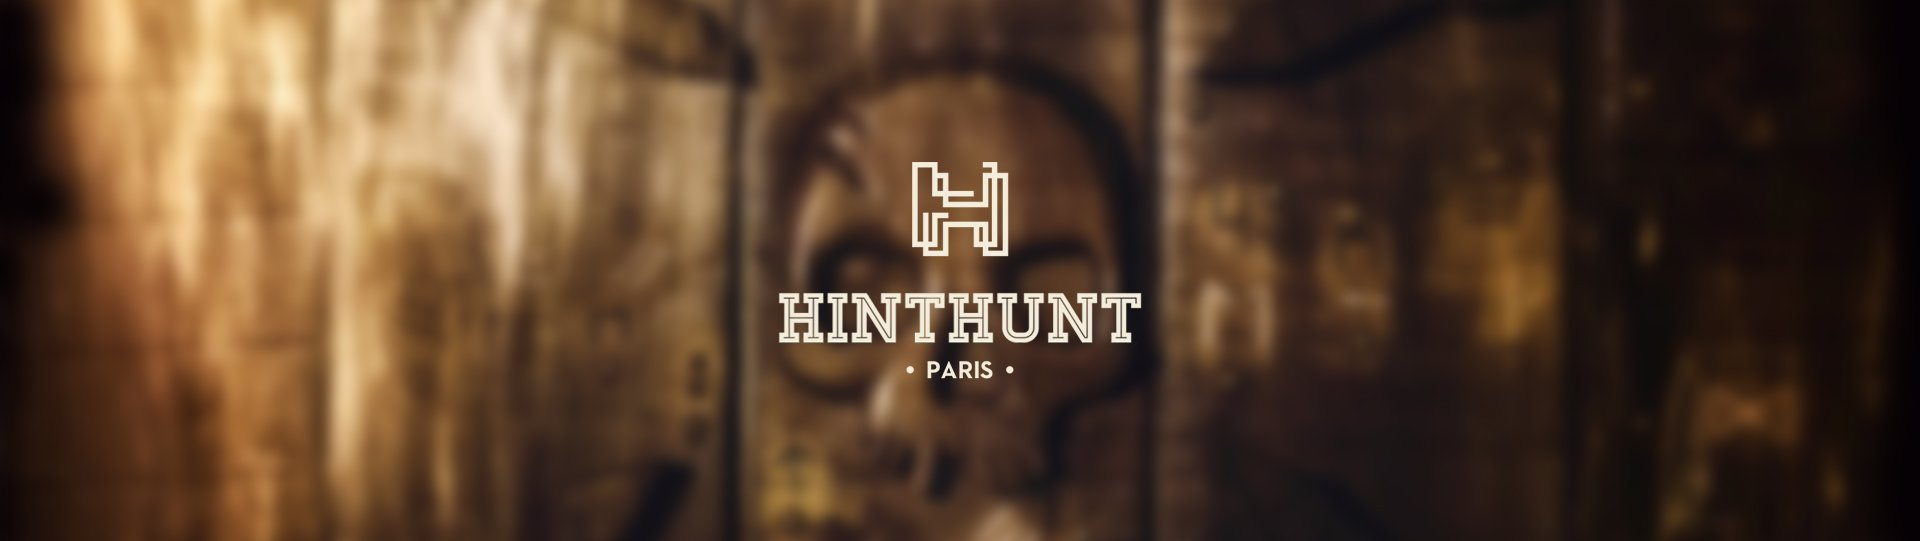 escape game paris hint hunt le secret du pirate.jpg